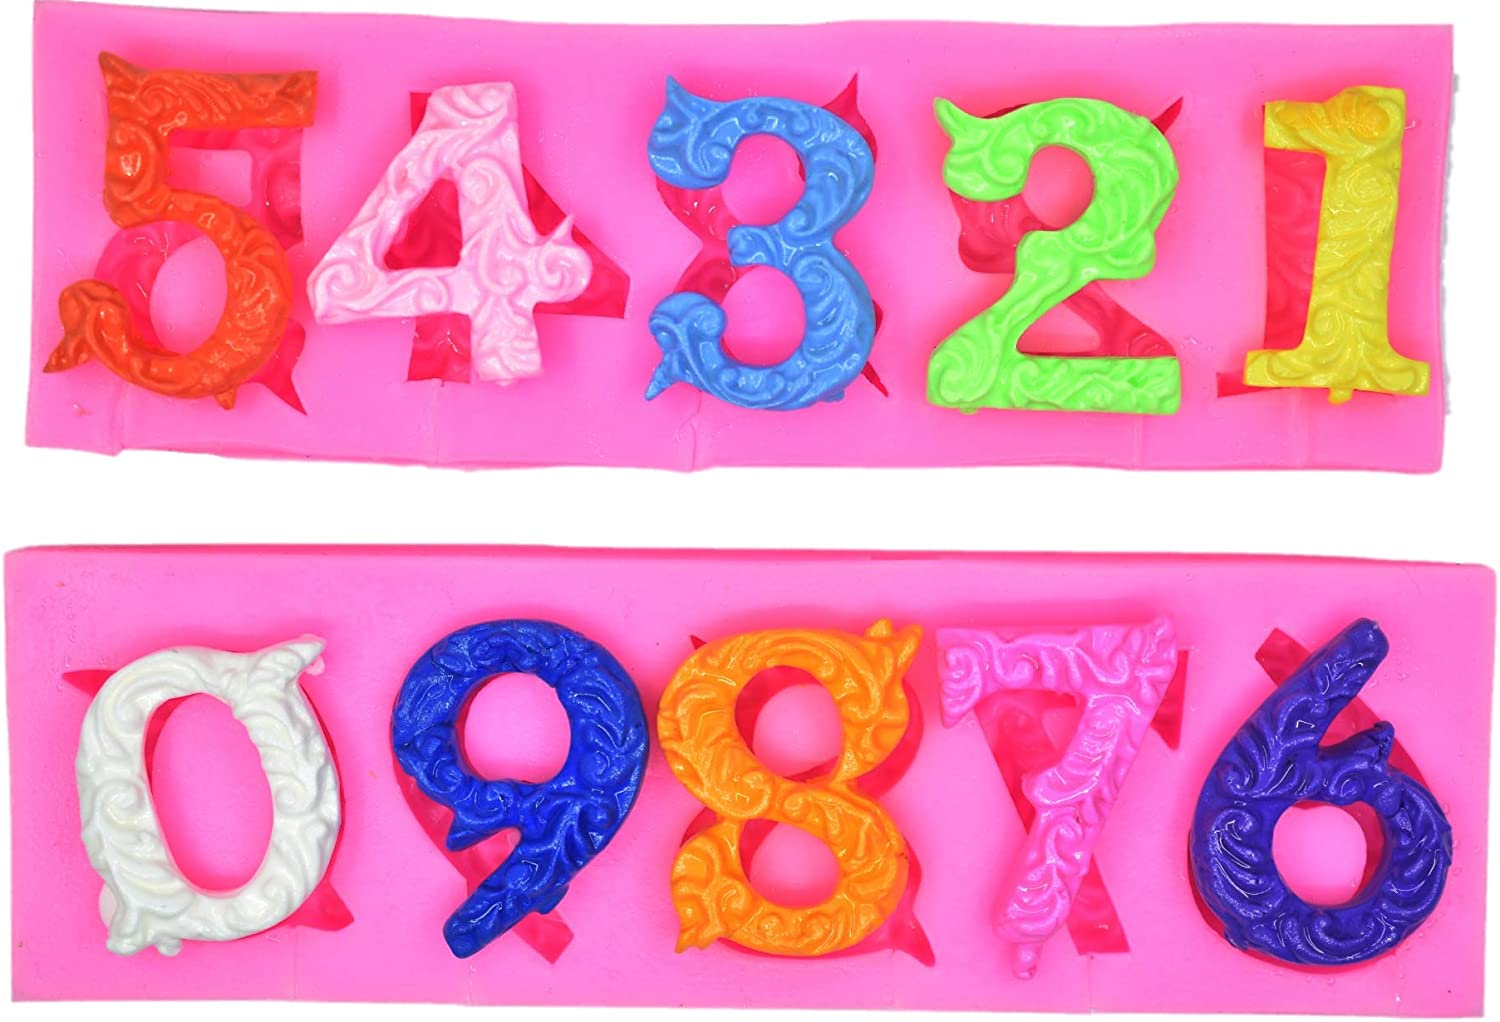 Alphabet Number 0-9 3d Silicone Mold Birthday Silicone Sugarcraft Mold Chocolate Fondant Candle Mold Cake Decoration for Baby Shower,Birthday Party,Anniversary